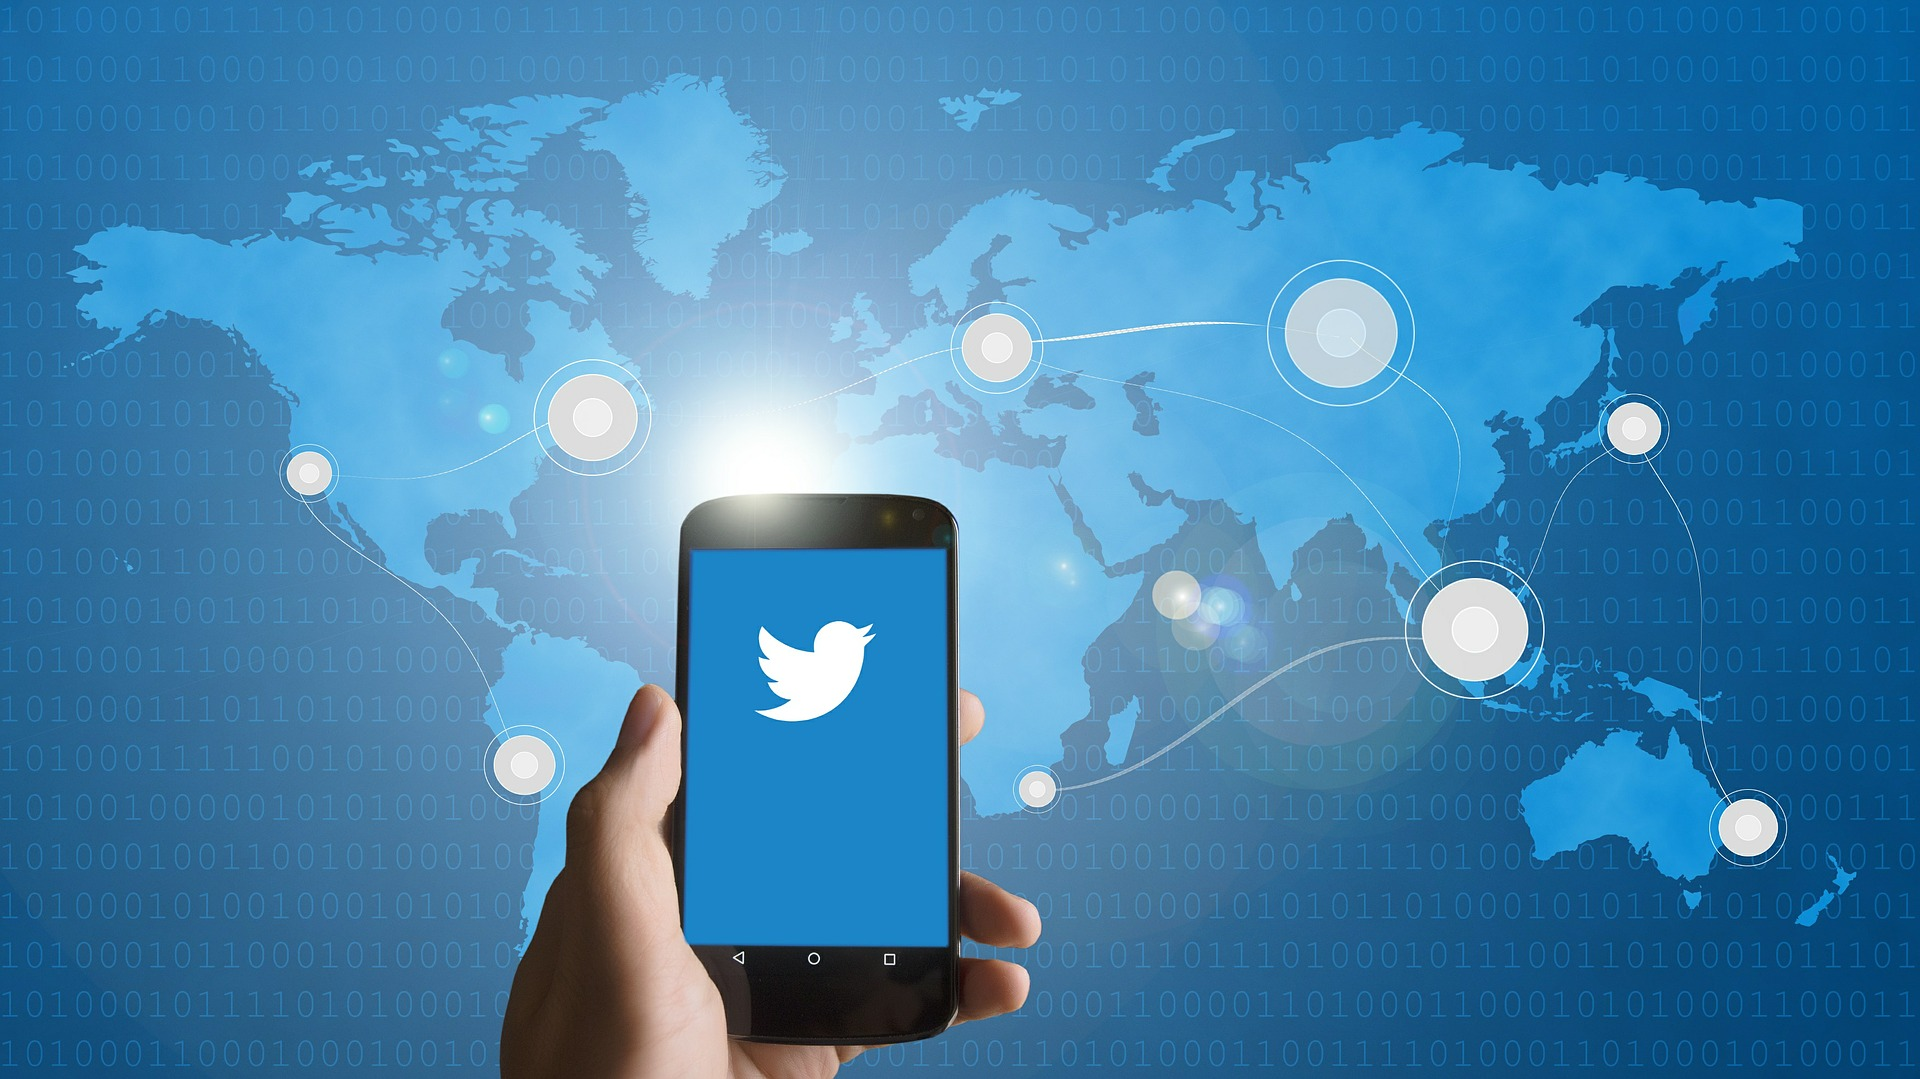 Jack Dorsey Proposes to Link Every Twitter Account with Bitcoin Lightning Wallet